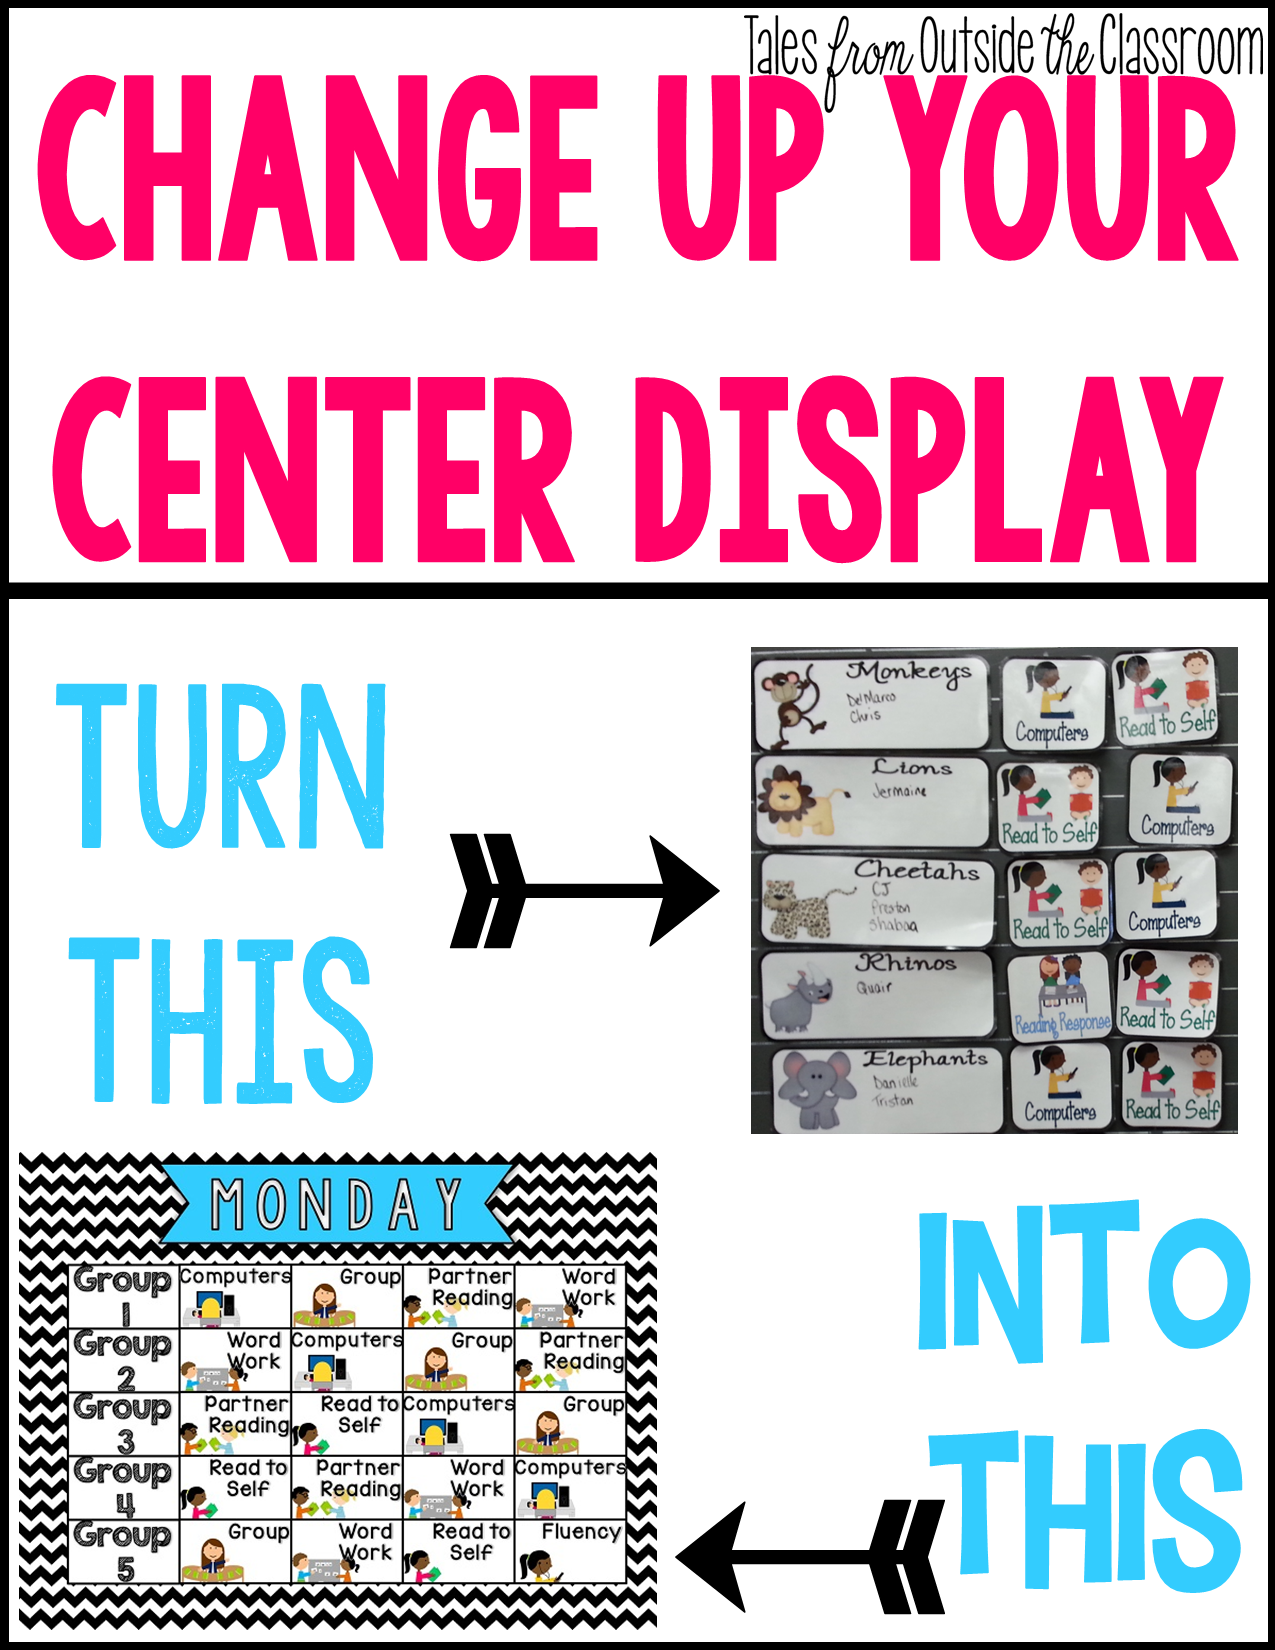 Use Powerpoint for your centers and small group management and create an easy display for students to follow without the mess of changing it daily.